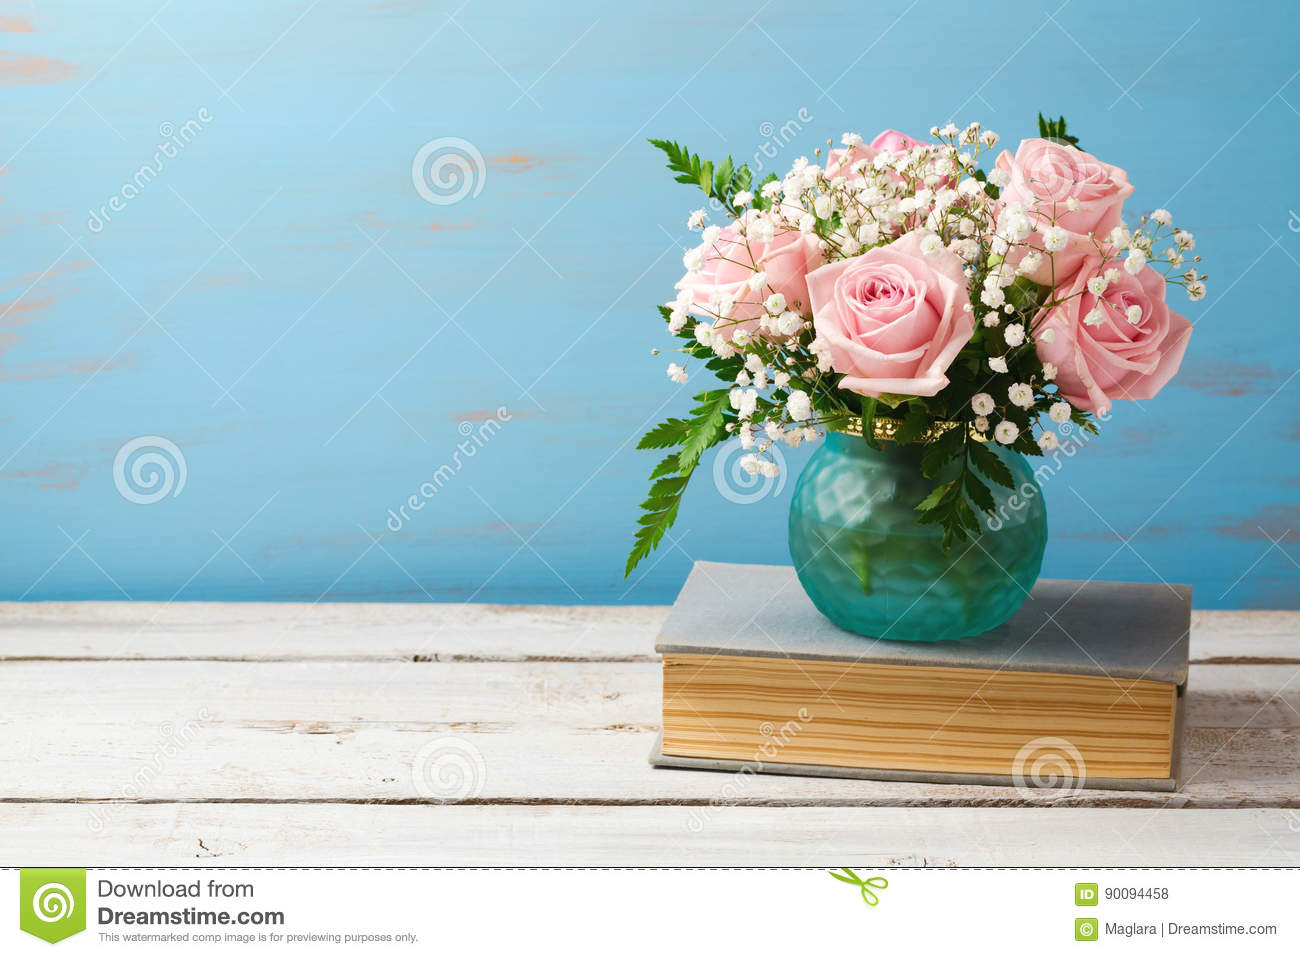 Rose flower bouquet in vase on old books over wooden background